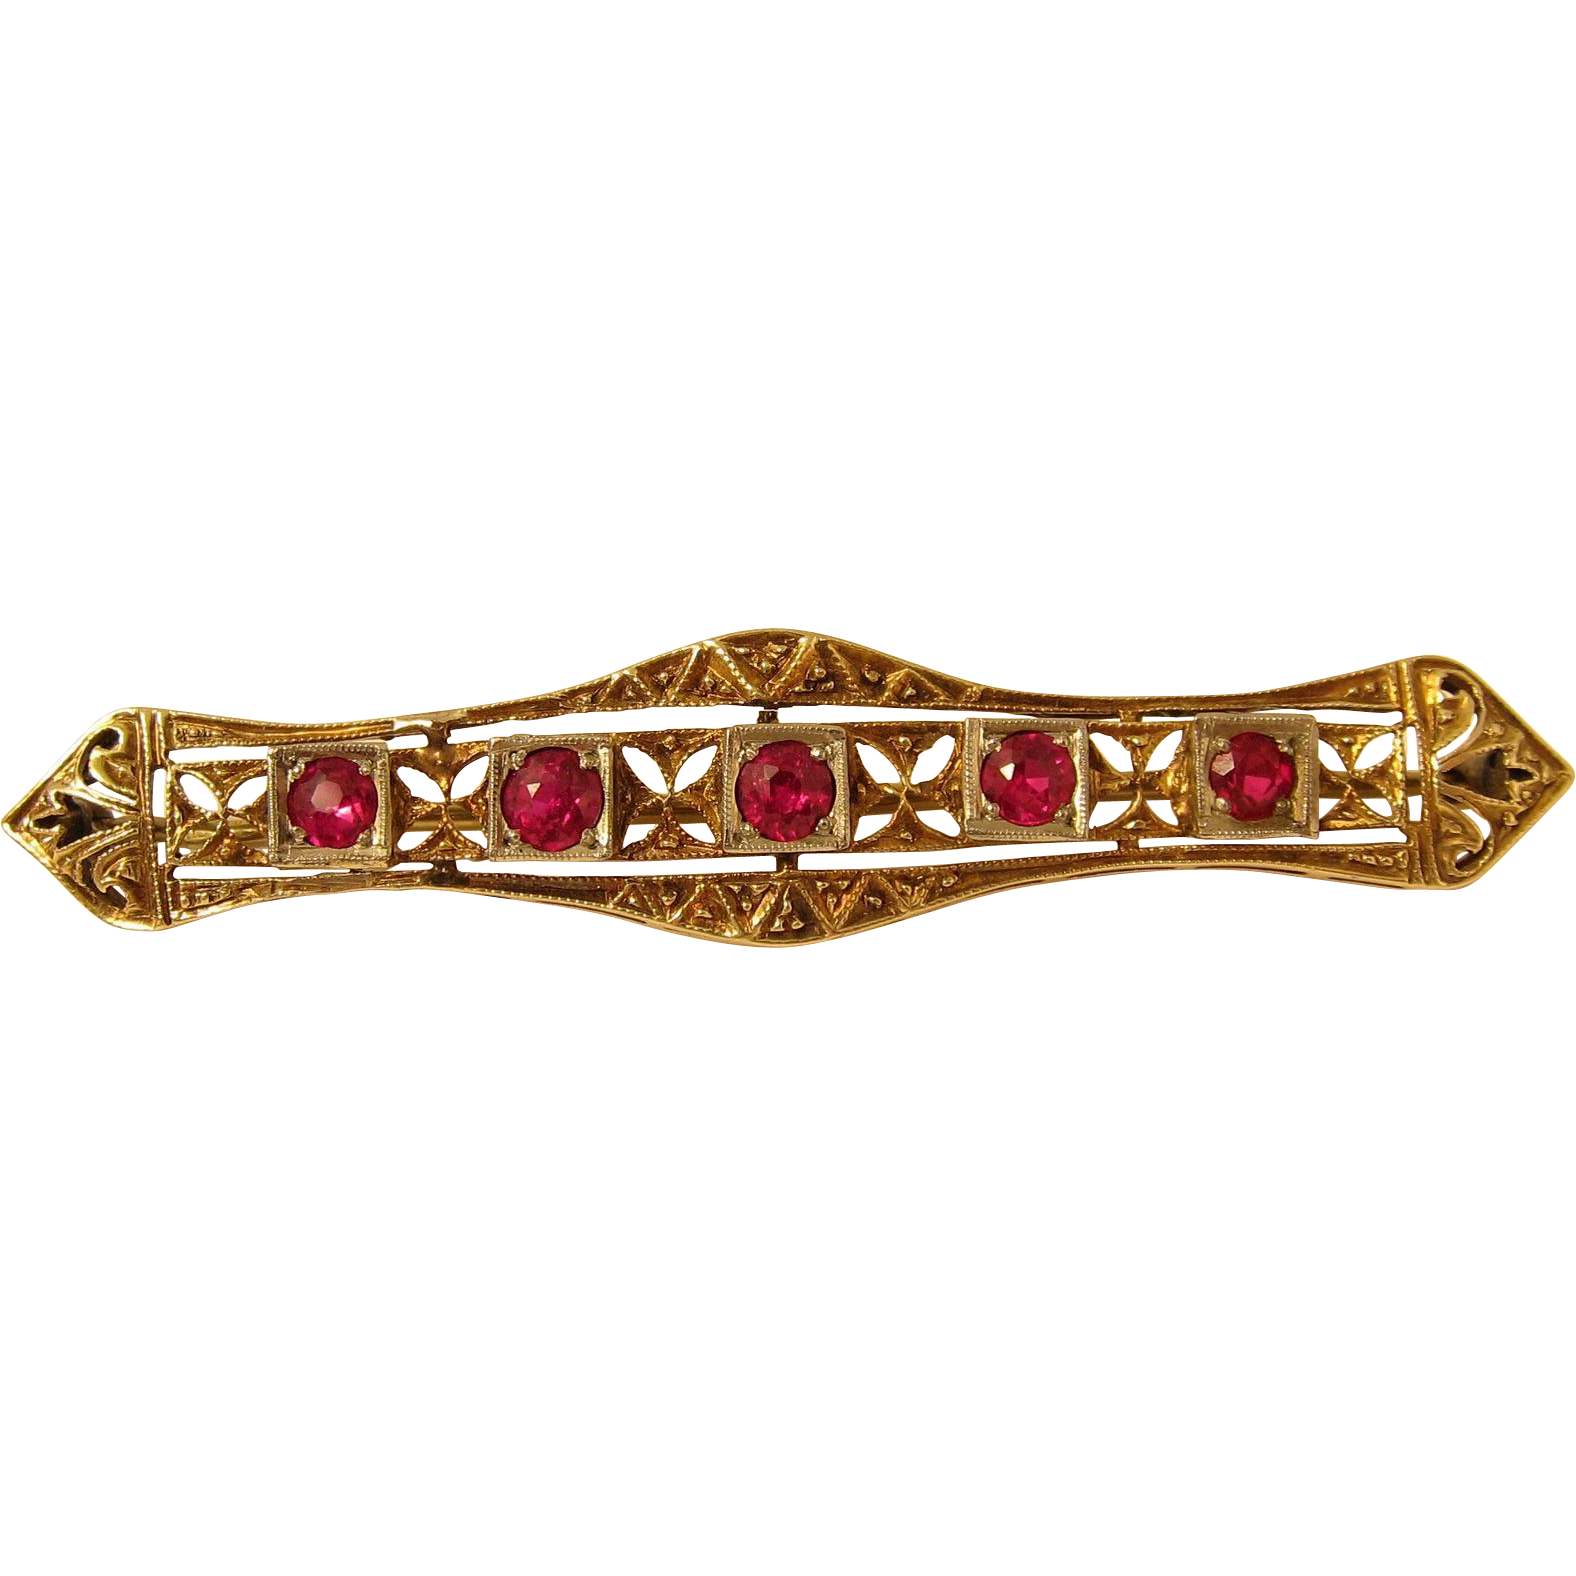 Vintage Art Deco 14k Yellow Filigree Gold & Rubies Bar Pin Brooch